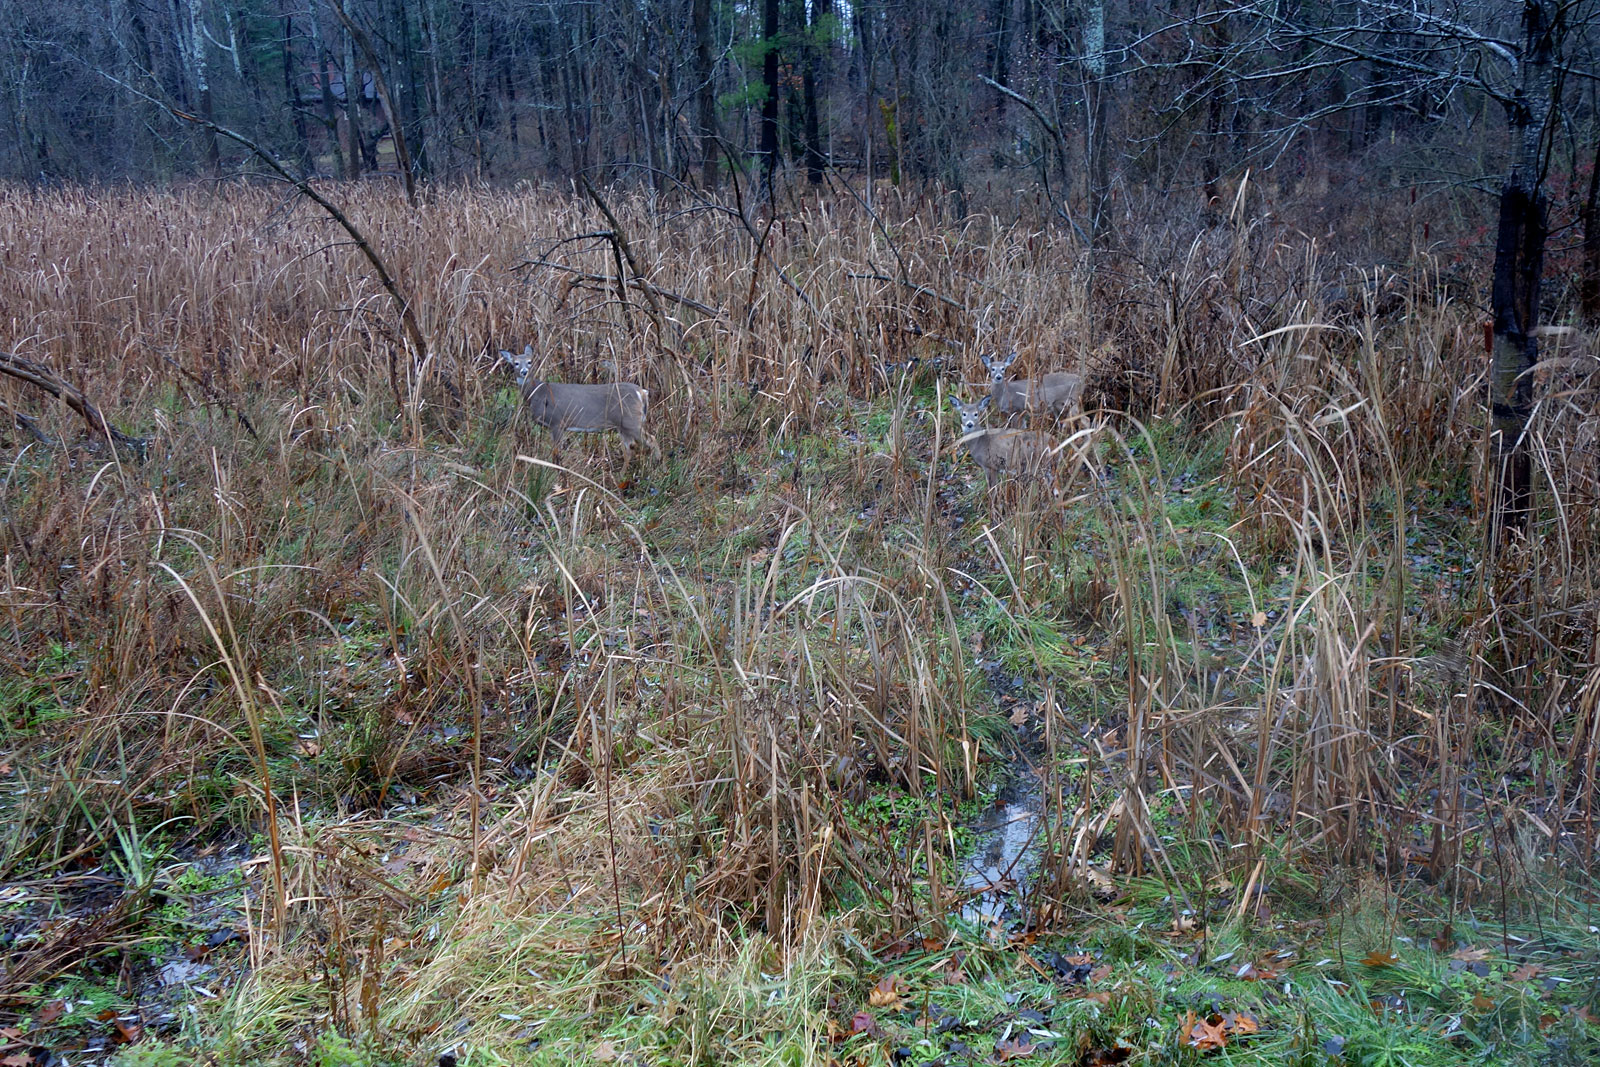 Three camouflaged deer on Hoffman Road in Rochester, New York